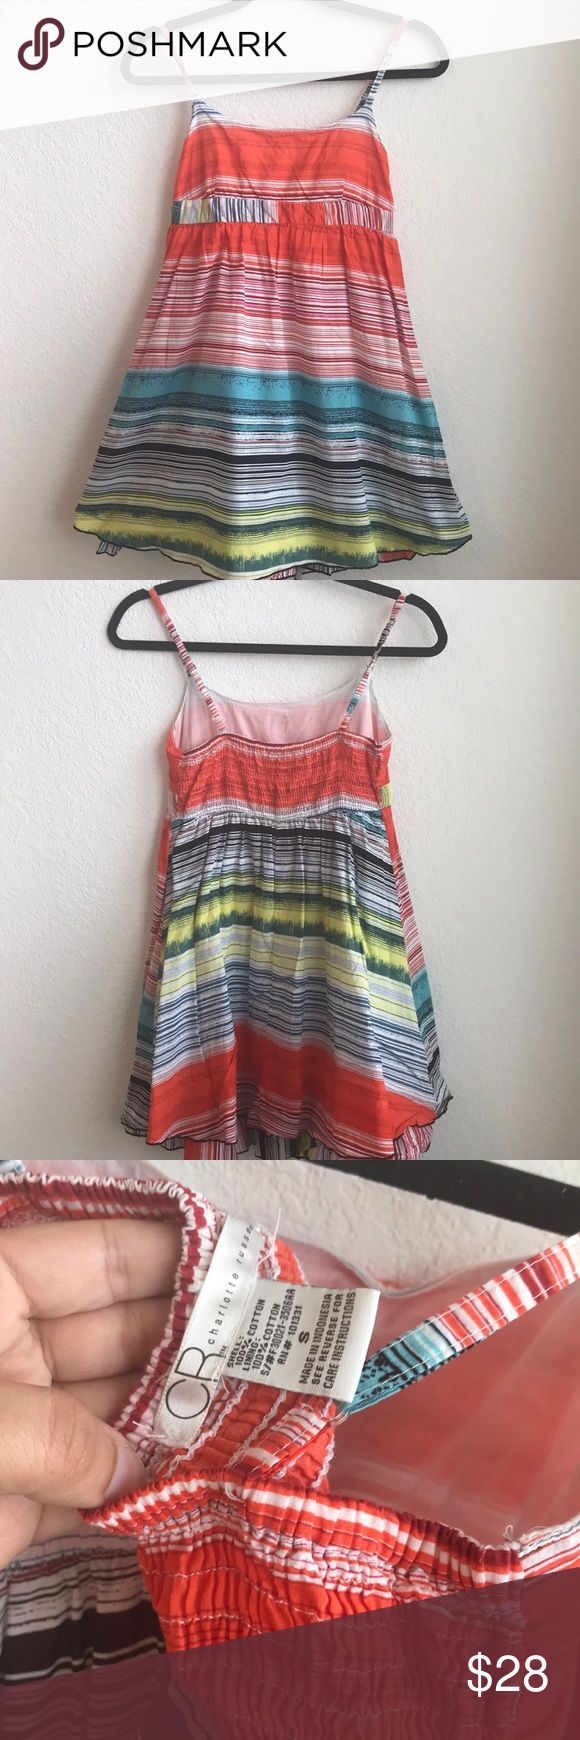 CR STRIPED DRESS 💗Condition: EUC, No flaws, no rips, holes or stains. Stretches at the back and can accommodate different bust sizes. Adjust in the straps for shorter and longer length.  💗Smoke free home/Pet hair free 💗No trades, No returns. No modeling  💗 I don't drop prices, make me offers!  💗Shipping next day. Beautiful package! 💗ALL ITEMS ARE OWNED BY ME. NOT FROM THRIFT STORES 💗All transactions video recorded to ensure quality.  💗Ask all questions before buying Charlotte Russe…